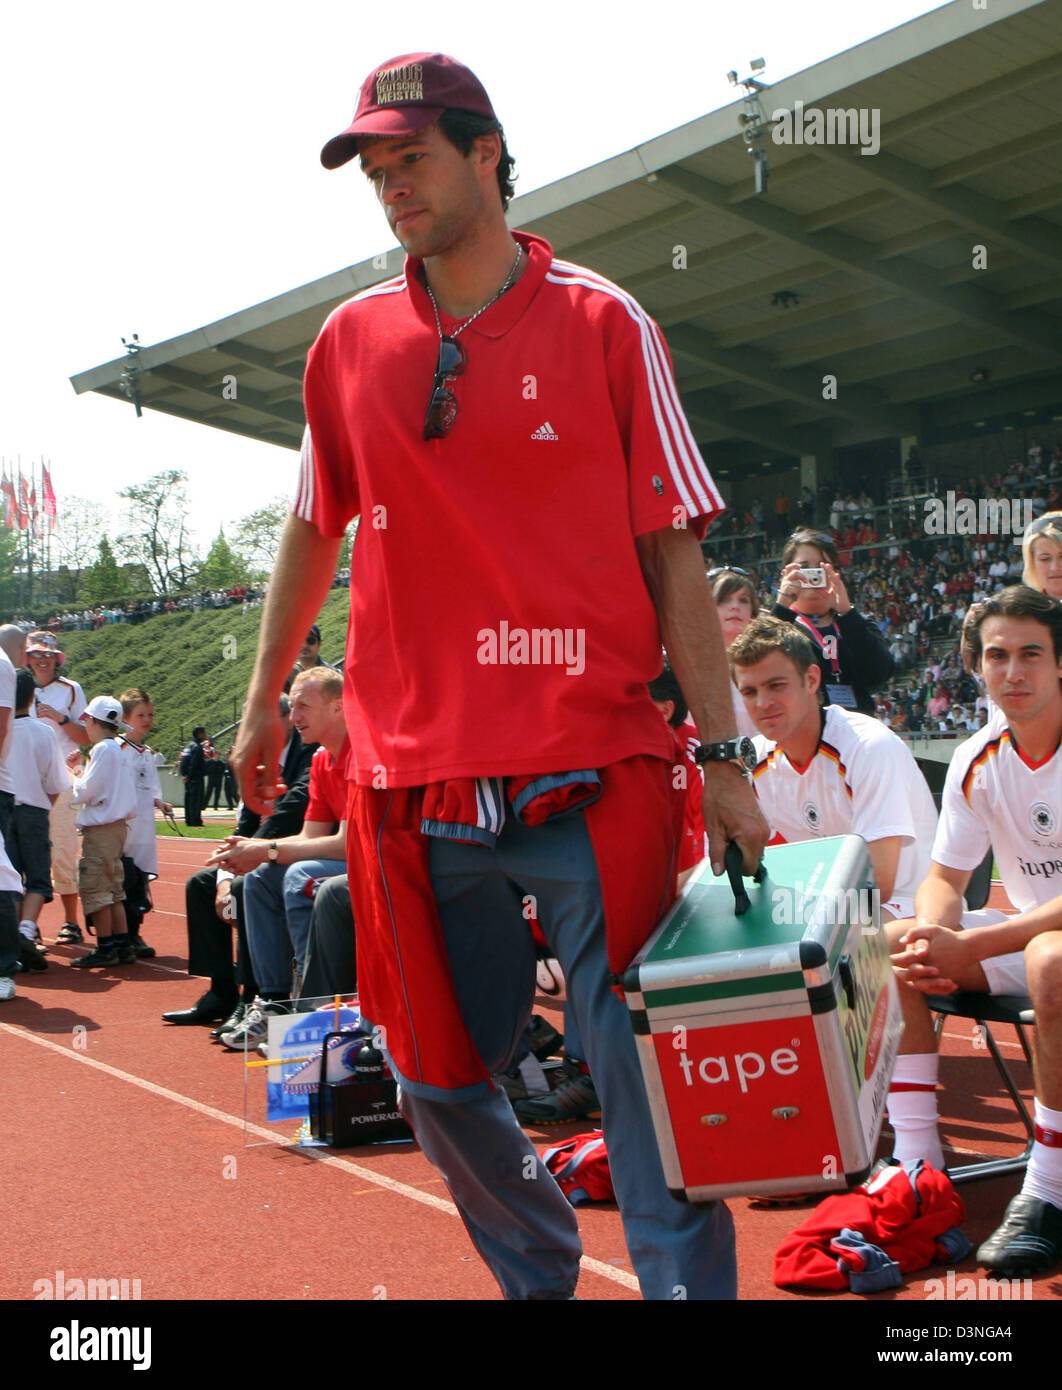 Bayern Muenchen player Michael Ballack carries a doctor's case at his team's friendly match against Bonner - Stock Image